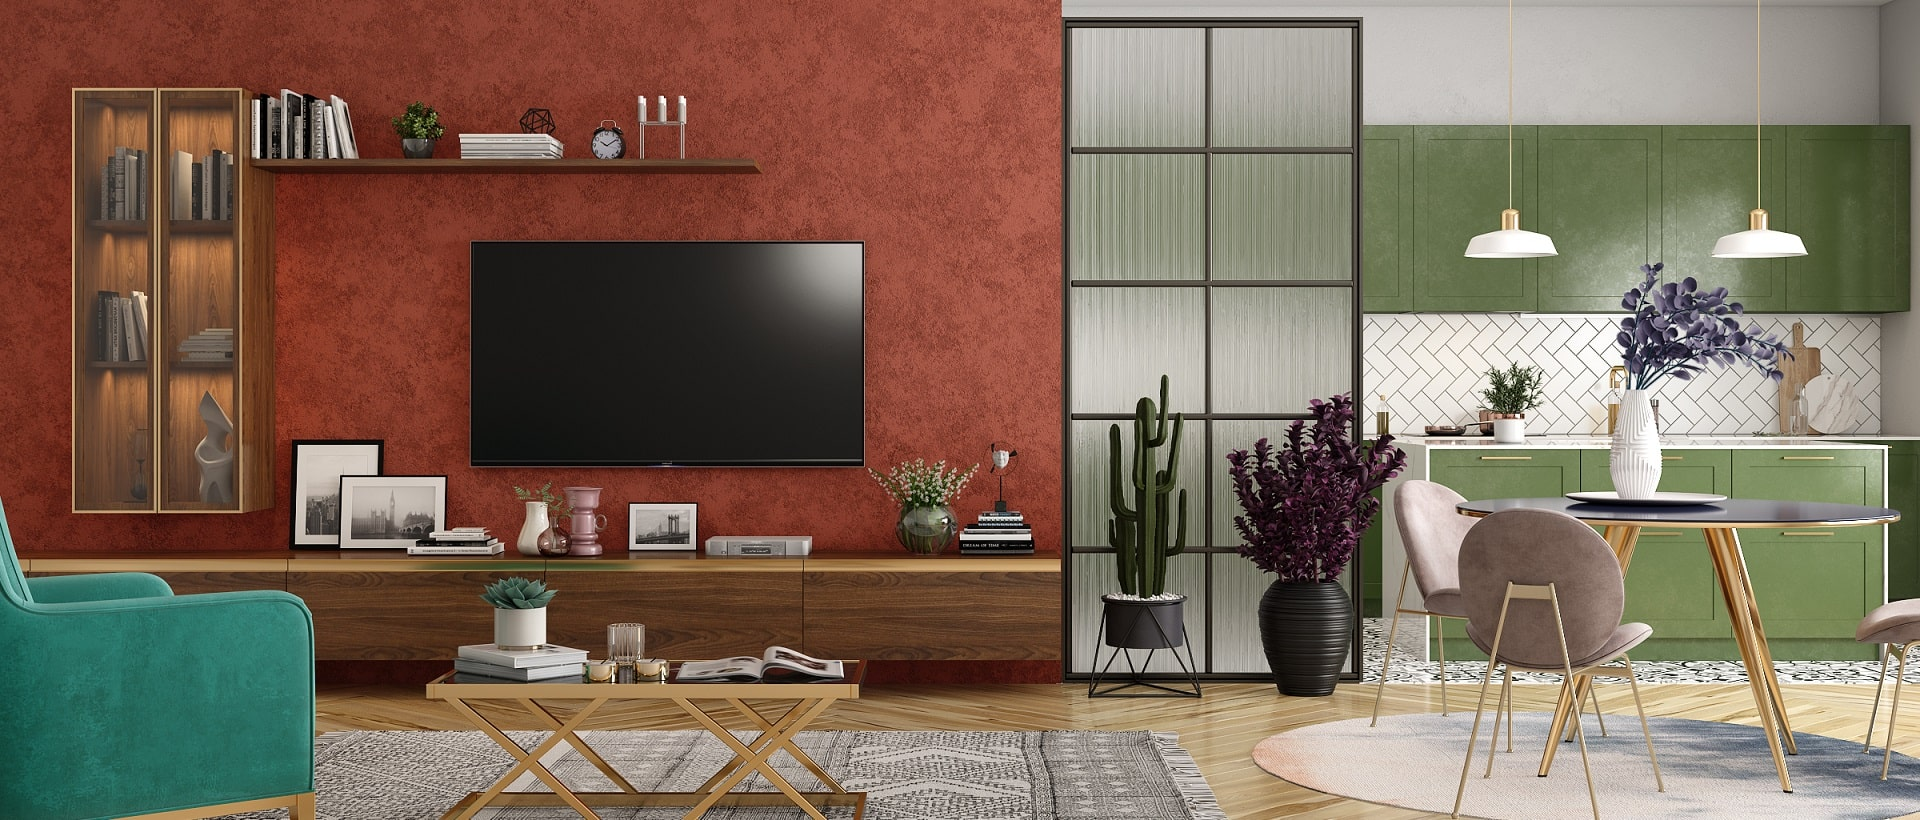 Online home interior design services from virtual interior design company in Bangalore, Mumbai and Hyderabad.